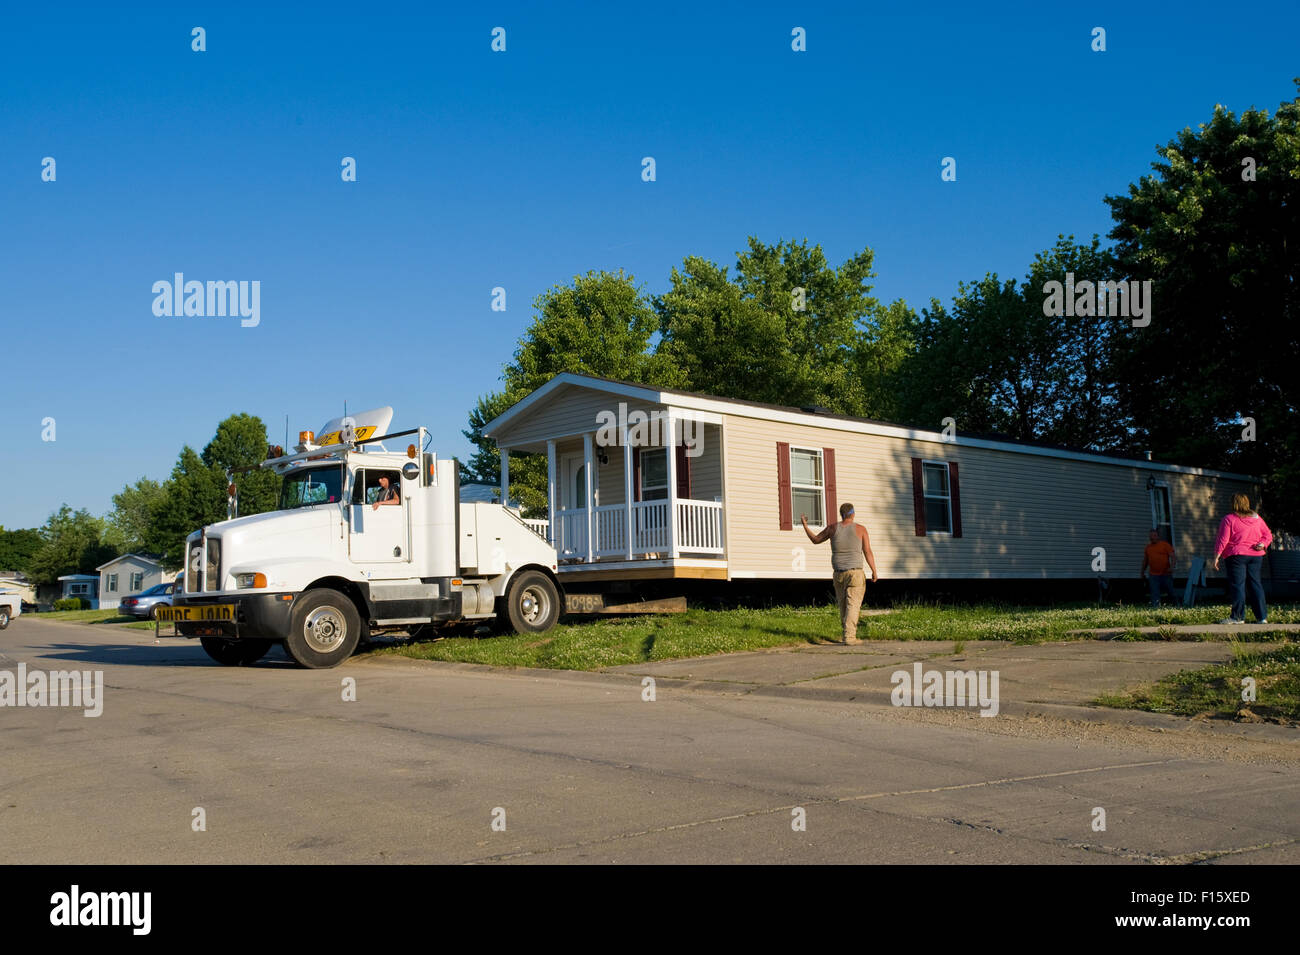 New Mobile Home Being Moved Into Place In Trailer Park